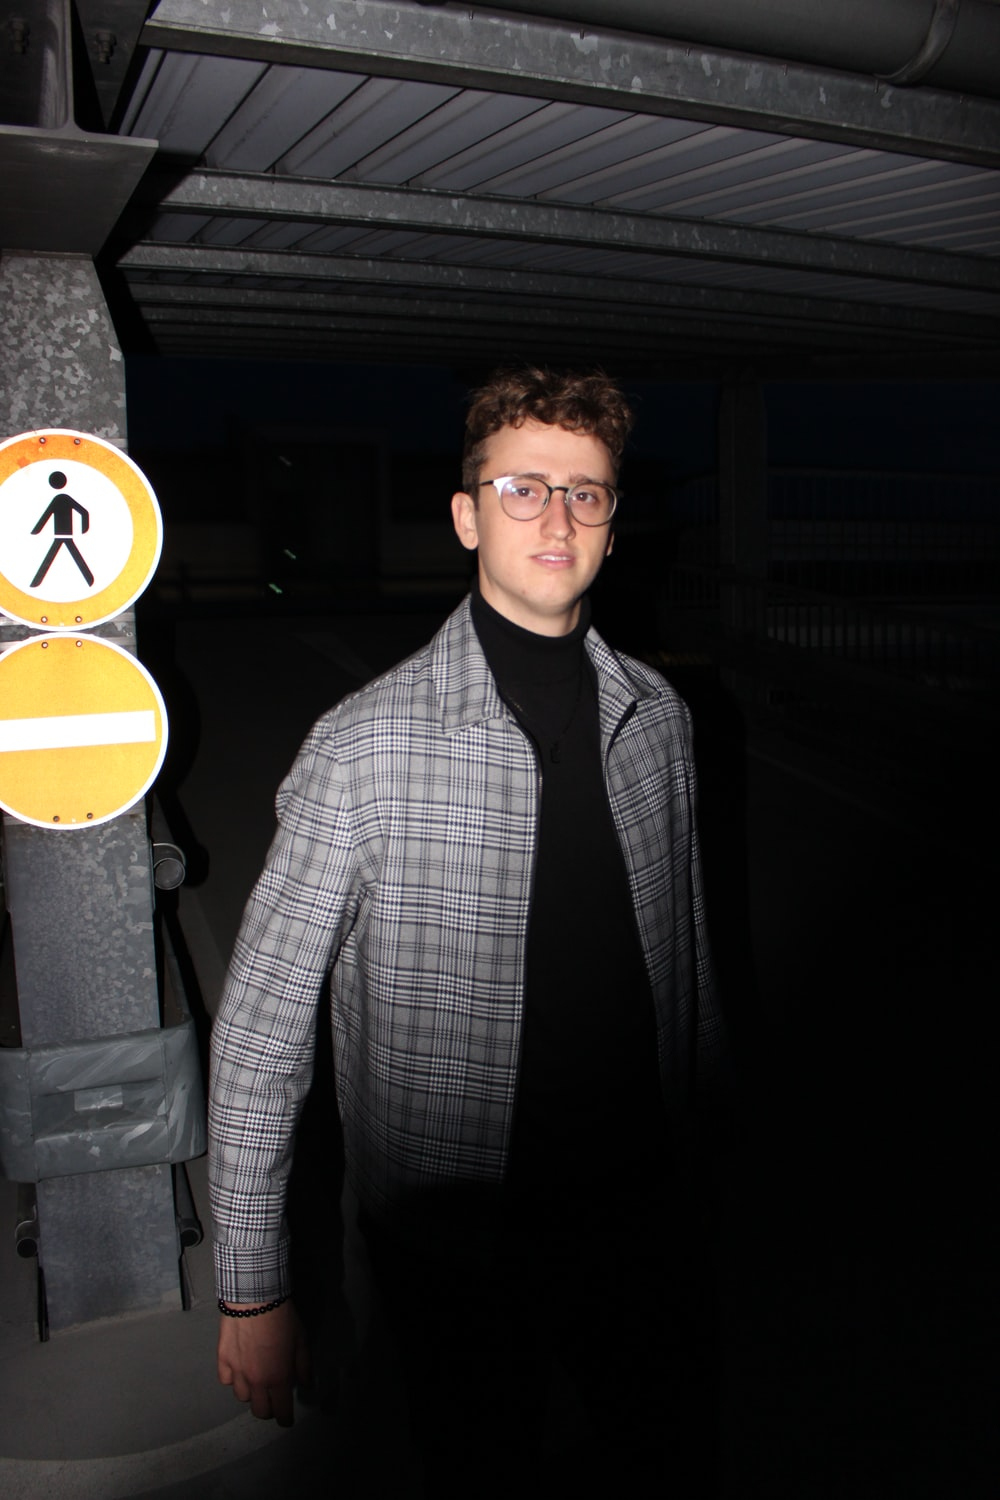 man in black suit jacket standing beside yellow and black no smoking sign